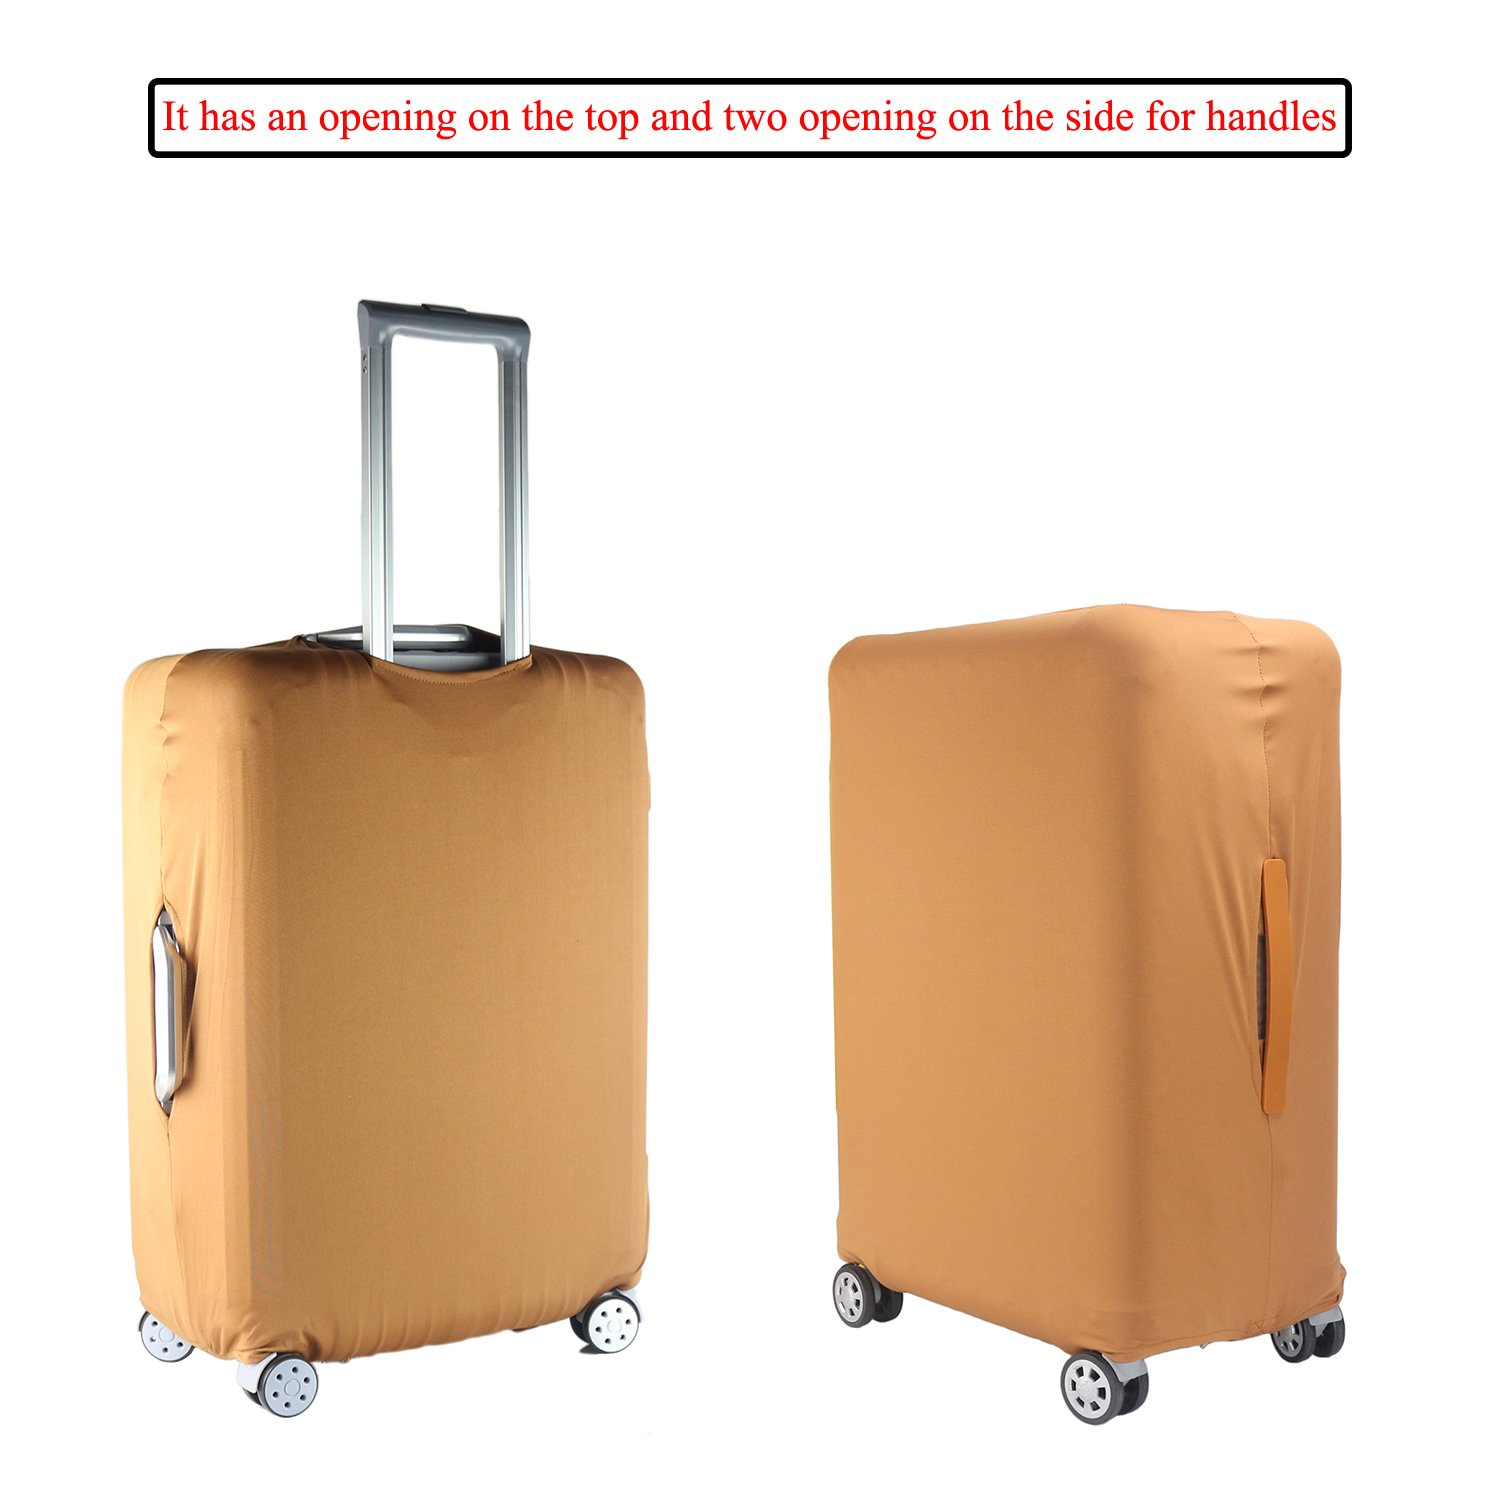 TOGEDI Luggage Cover Anti-Scratch Travel Luggage Protective Cover for18-30 Suitcase